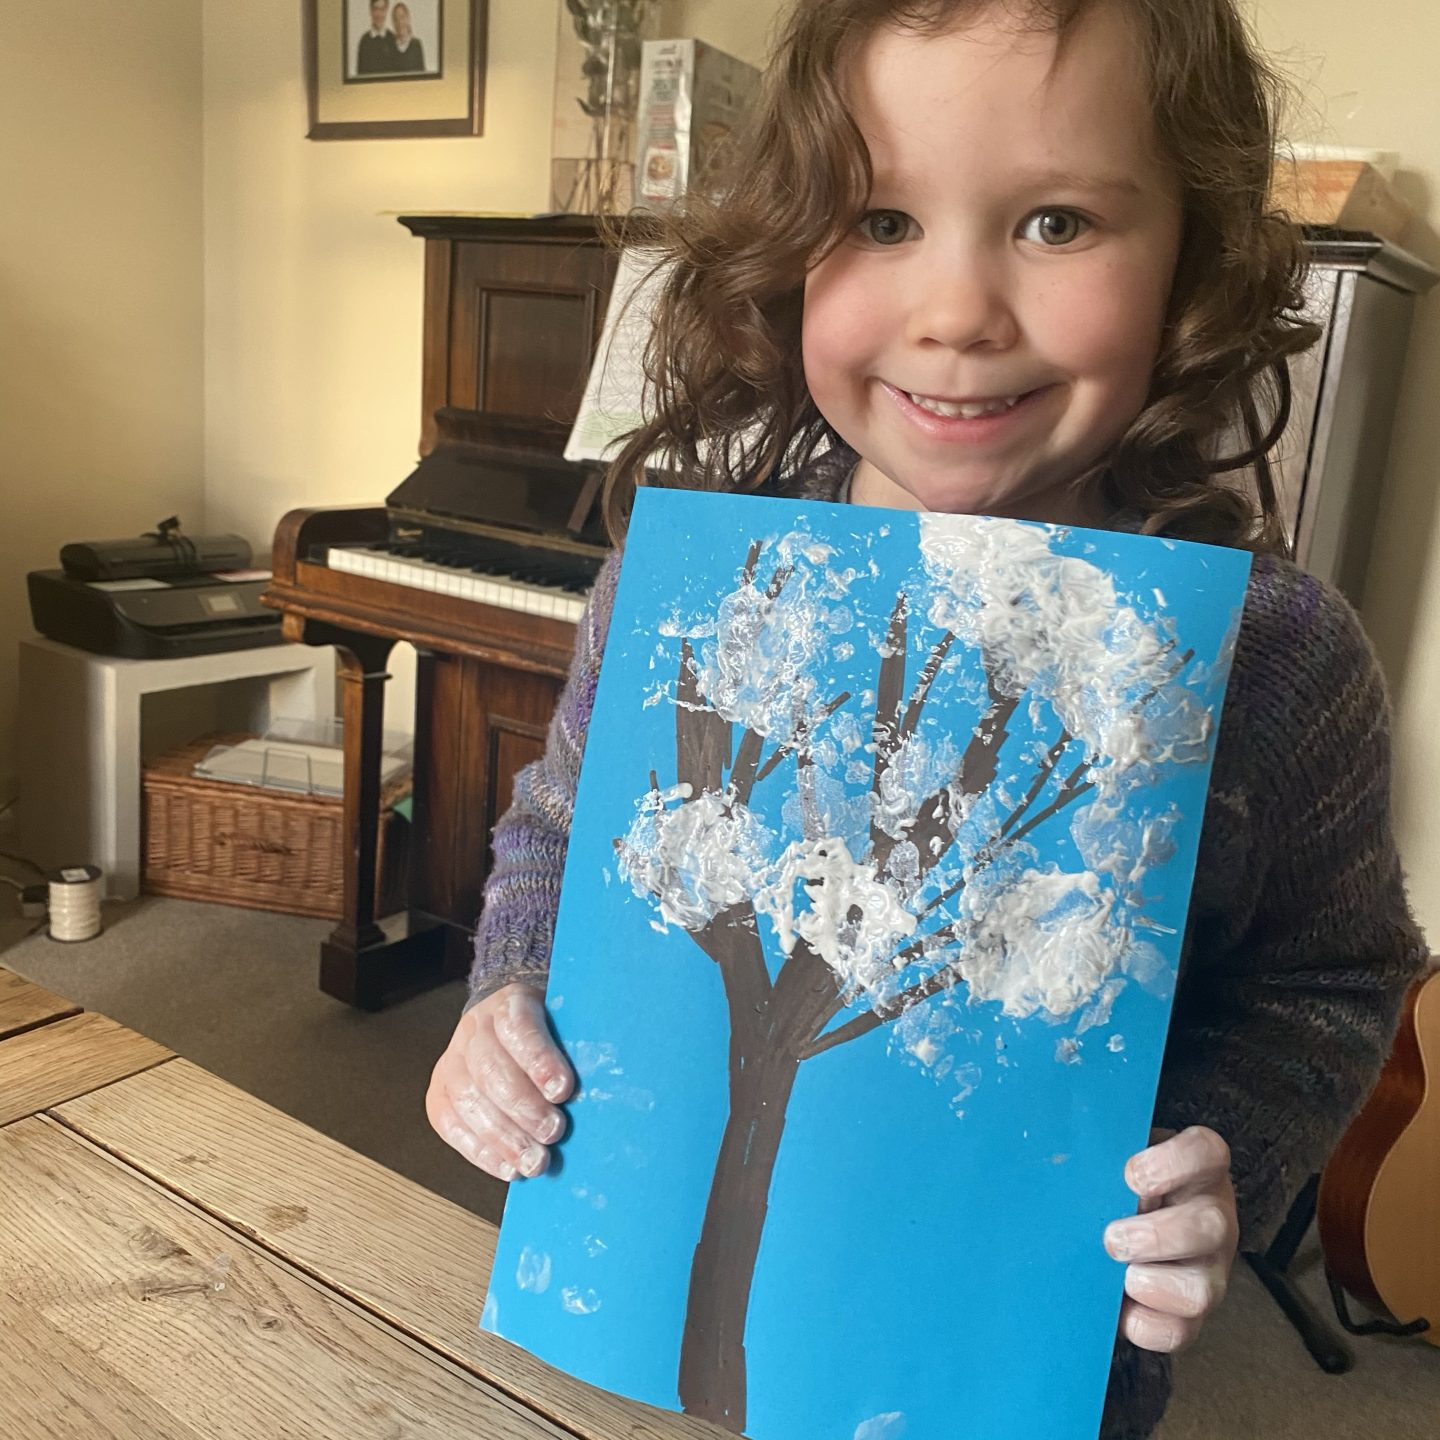 a child smiling with a painting of a snowy tree